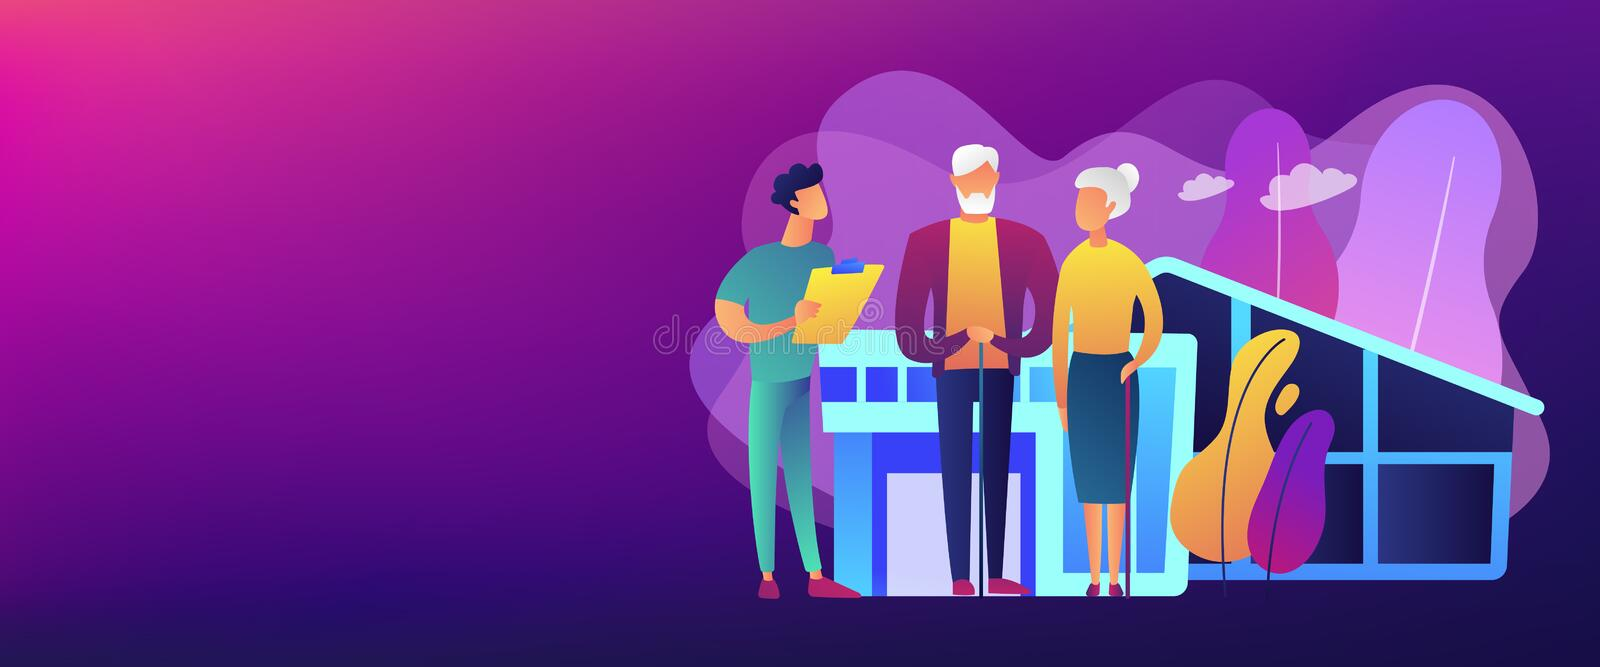 Nursing home concept banner header. Skilled nurse and elderly people getting around-the-clock nursing care. Nursing home, nursing residential care, physical stock illustration